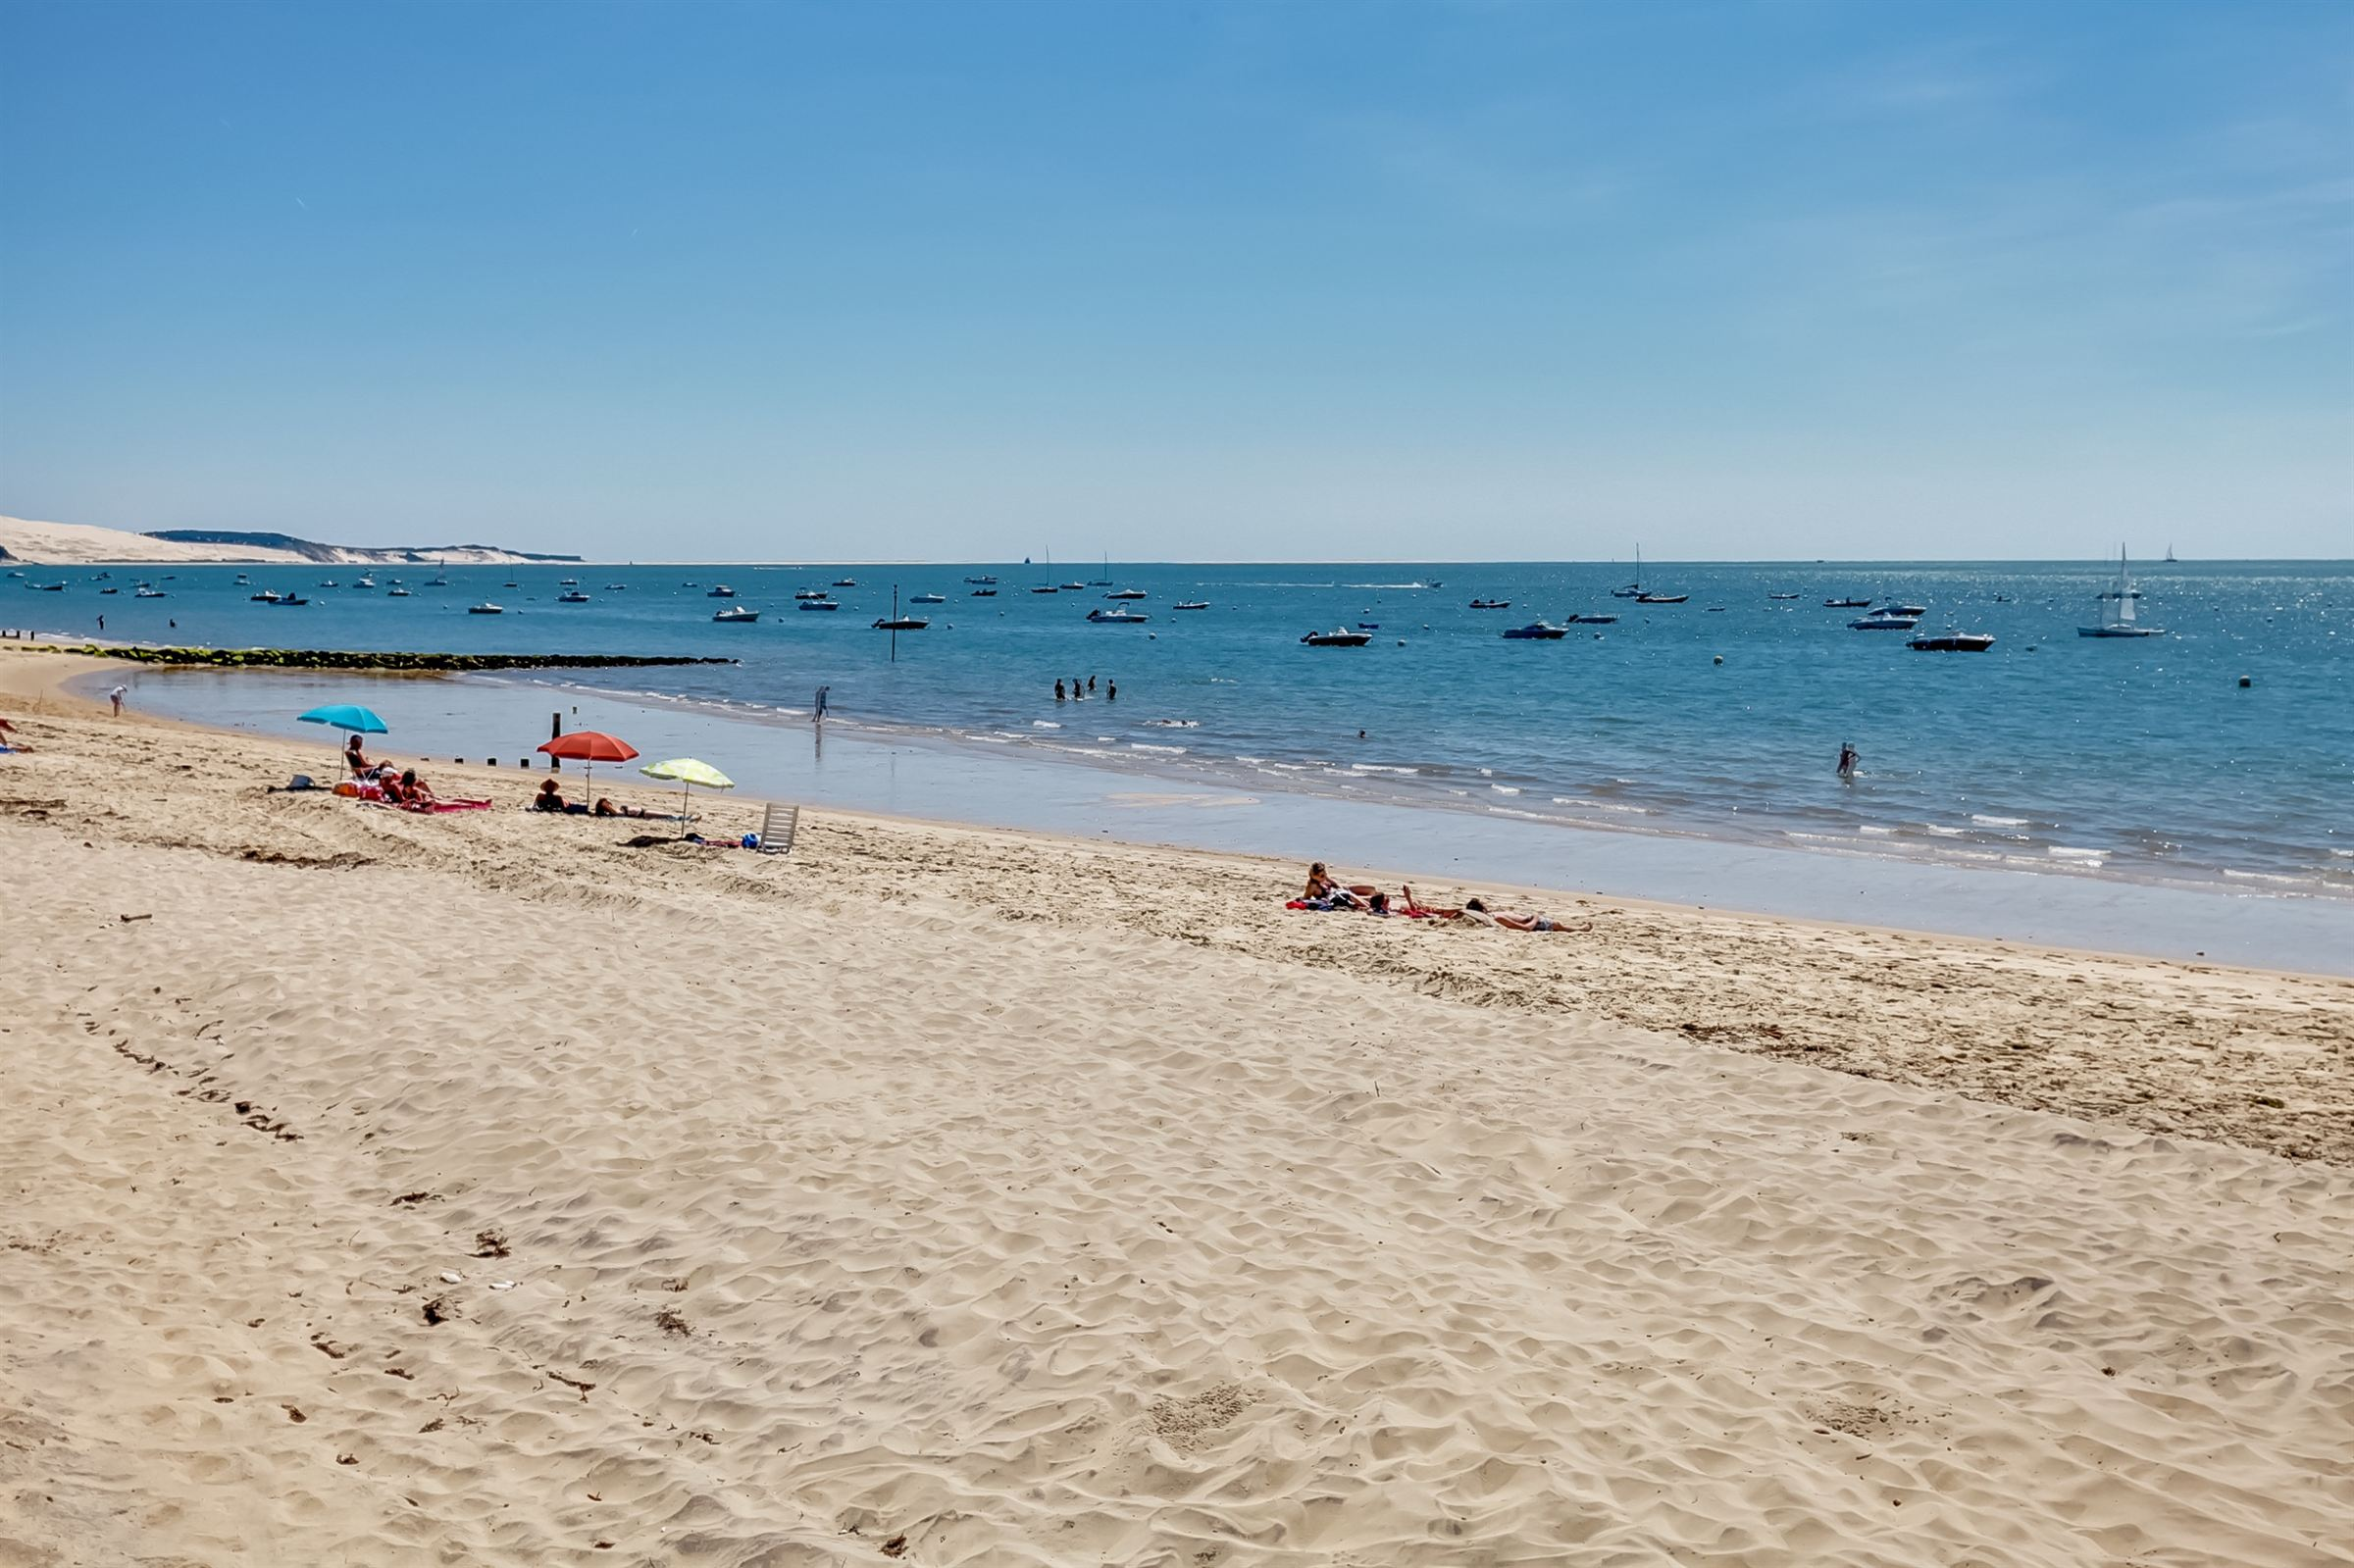 Apartment for Sale at PYLA SUR MER FRONT LINE APARTMENT WITH GARDEN AND BEACH ACCESS Pyla Sur Mer, Aquitaine, 33115 France